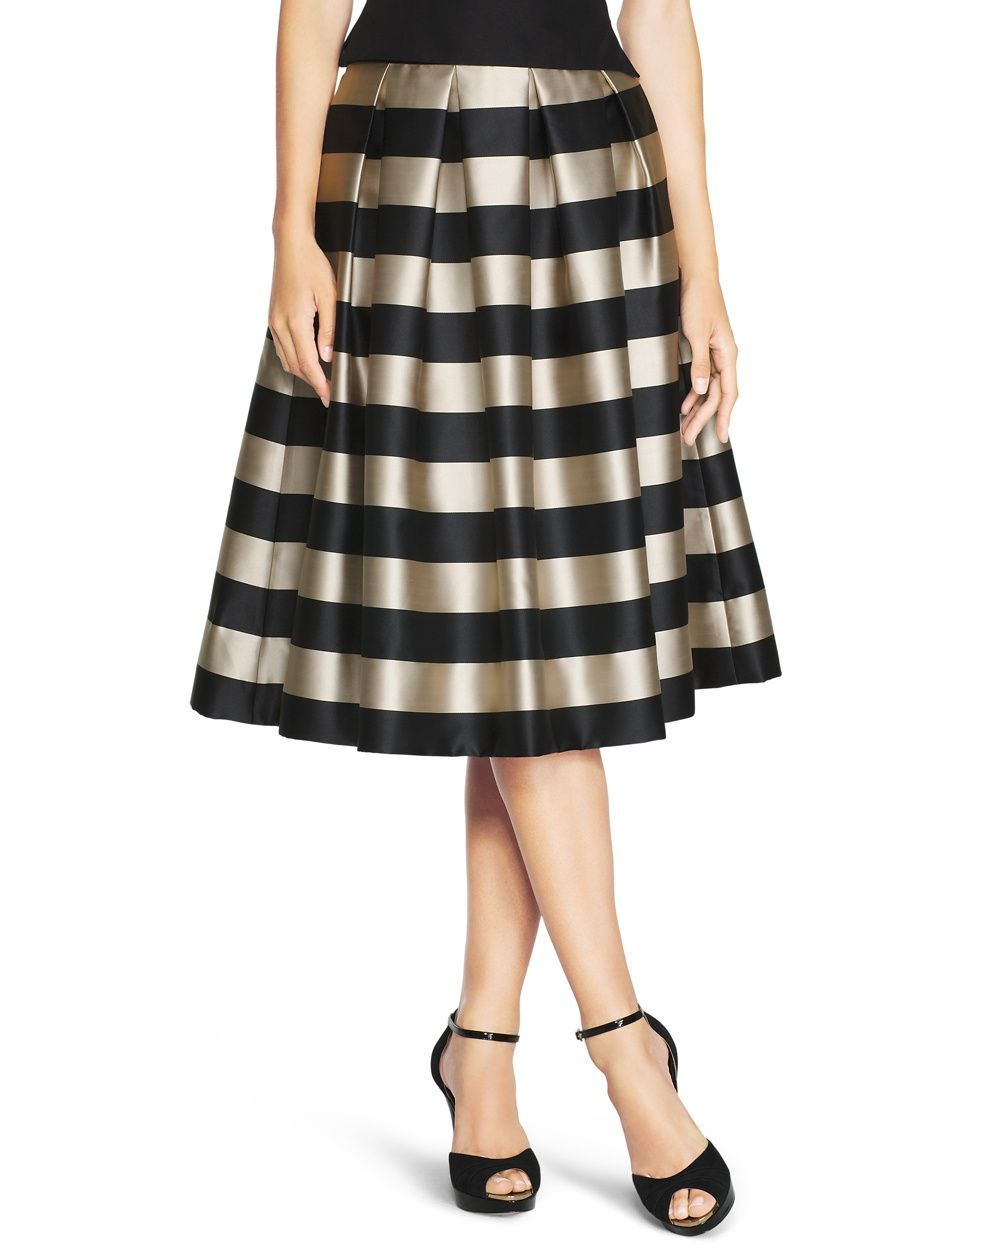 Striped Taffeta Midi Skirt | Dress skirt, Shops and Stripes